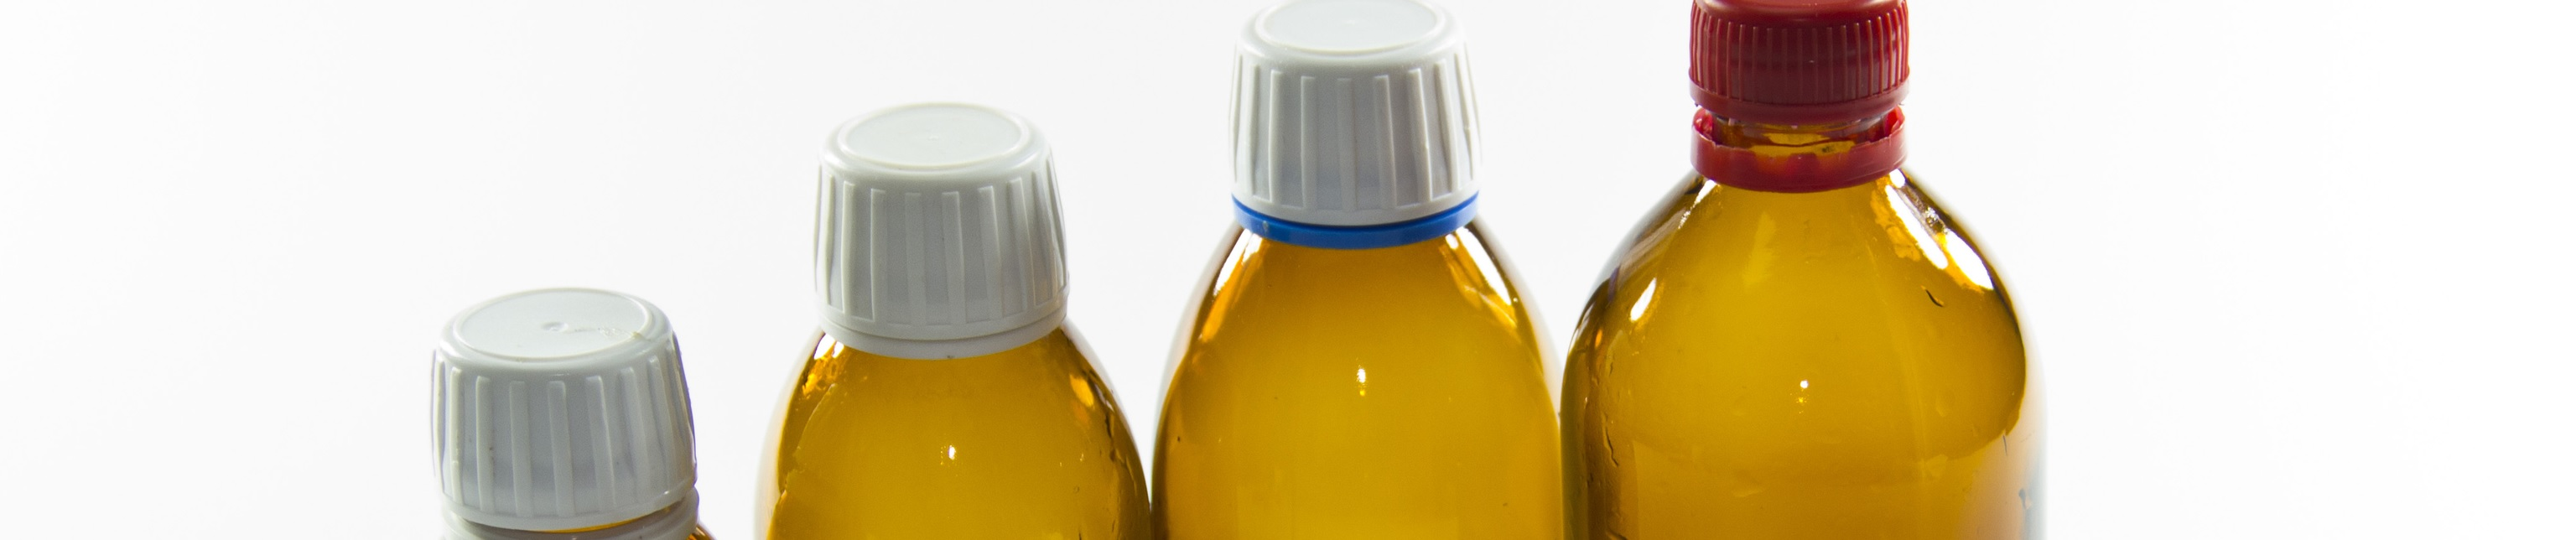 Amber glass syrup bottles